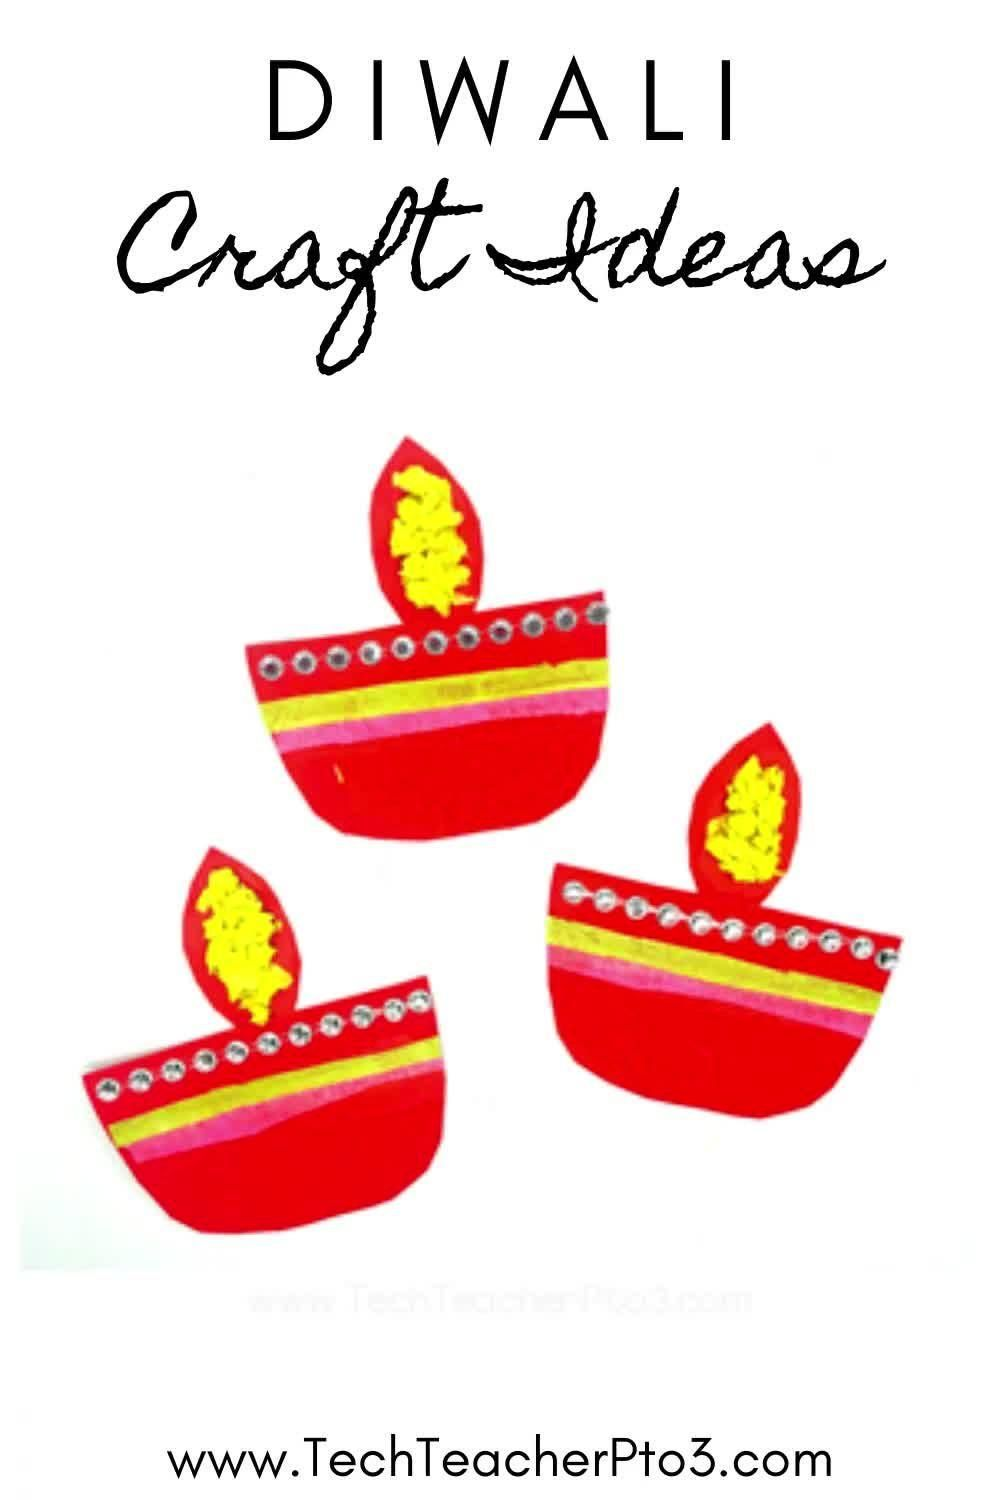 Easy Crafts For Celebrating Diwali In The Early Years Classroom Video Early Years Classroom Holiday Lessons Crafts [ 1500 x 1000 Pixel ]